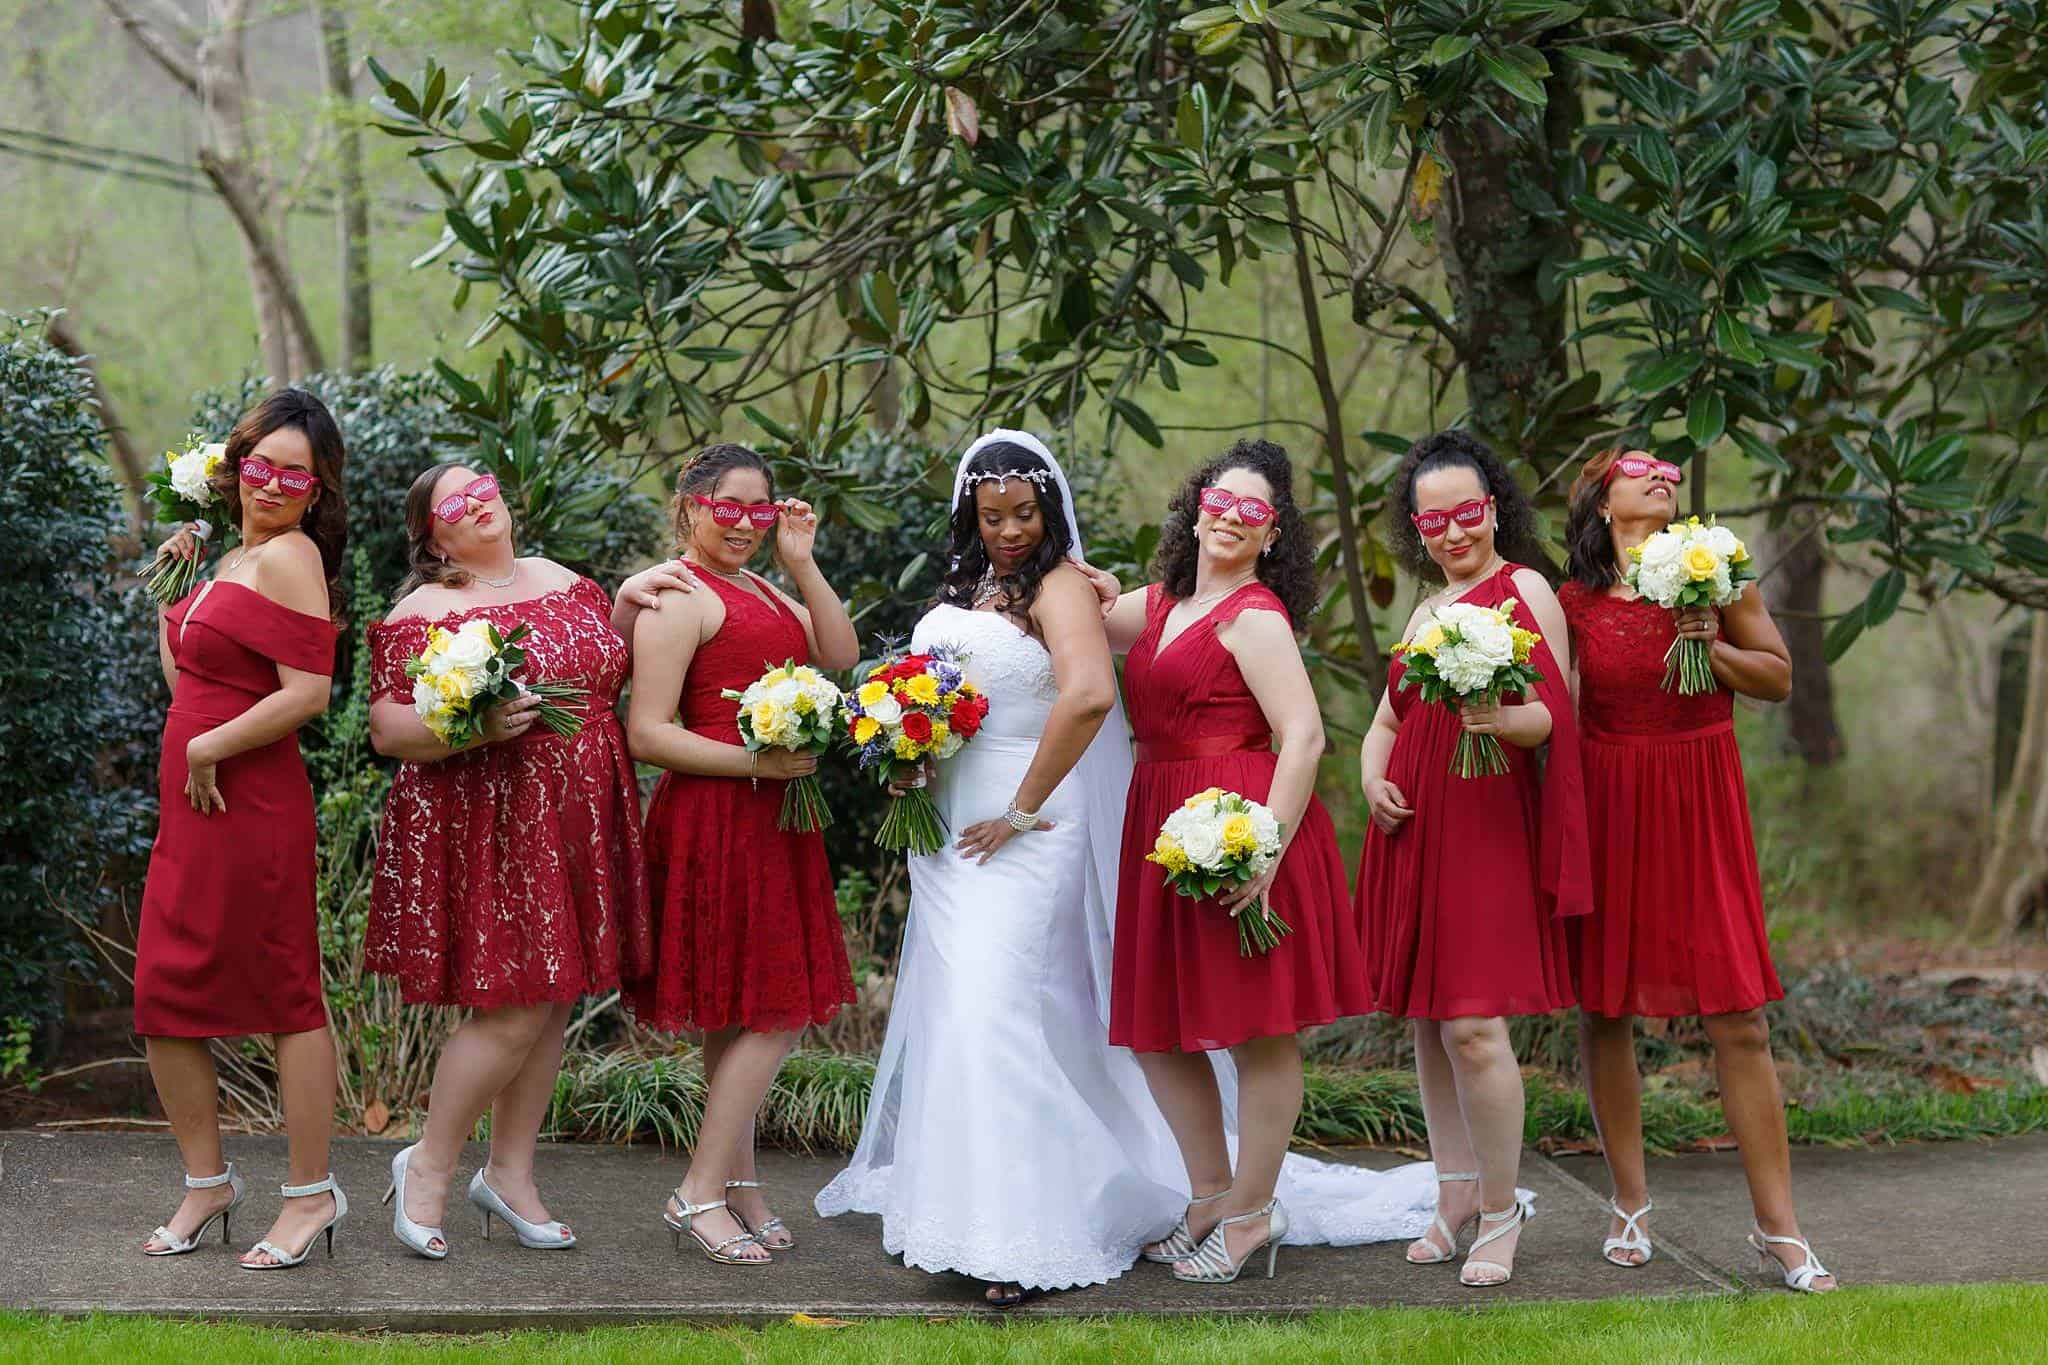 Bridesmaids with Bride having fun posing with red sunglasses that match red bridesmaids dresses